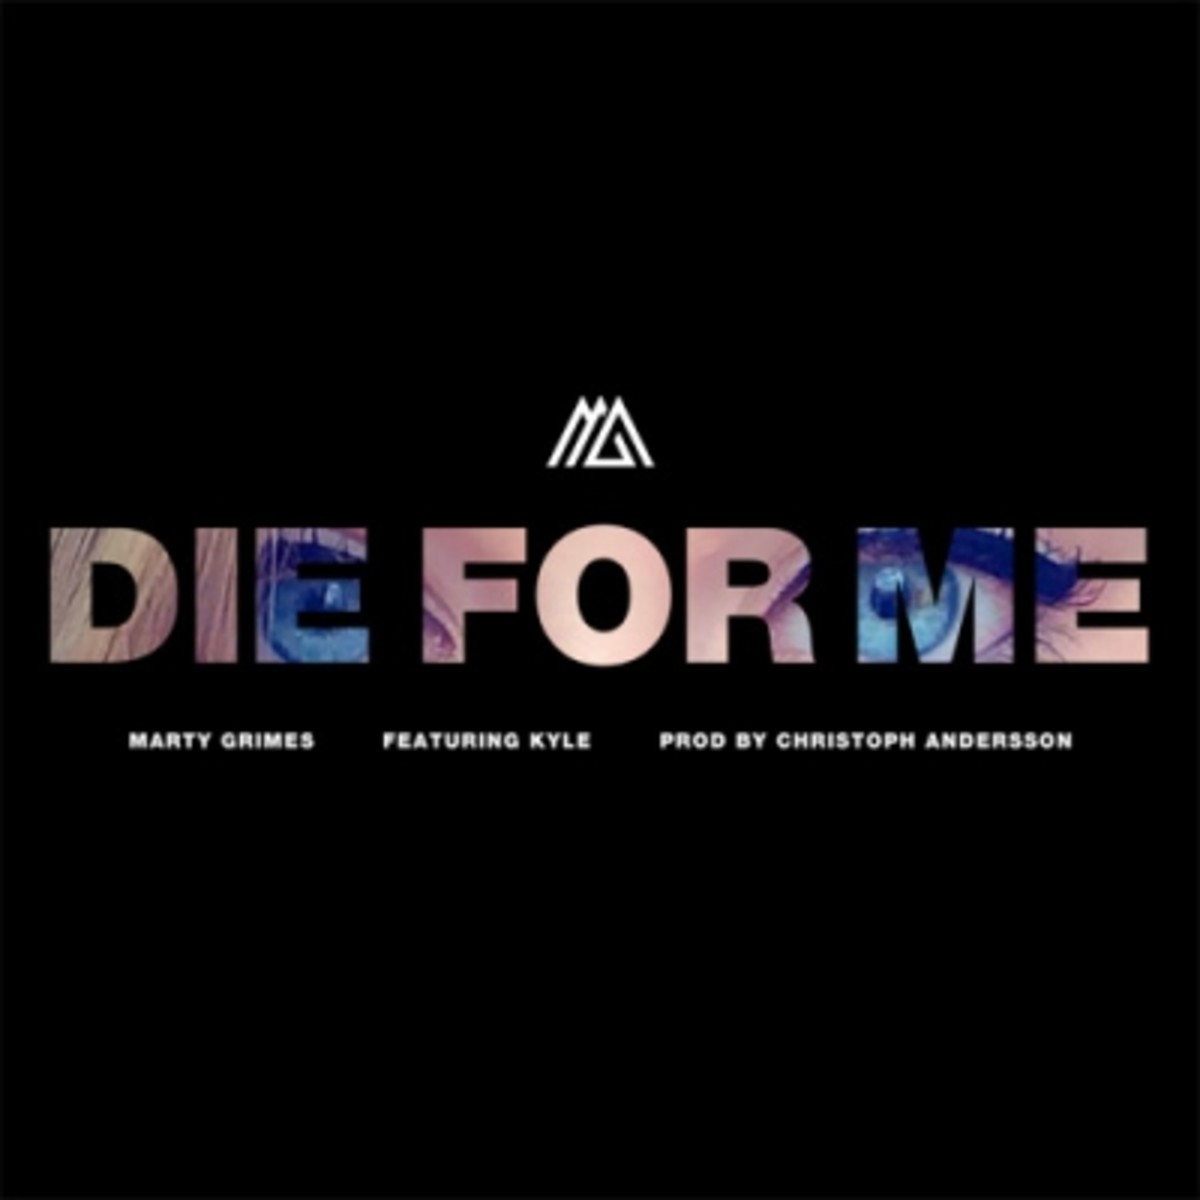 marty-grimes-die-for-me.jpg